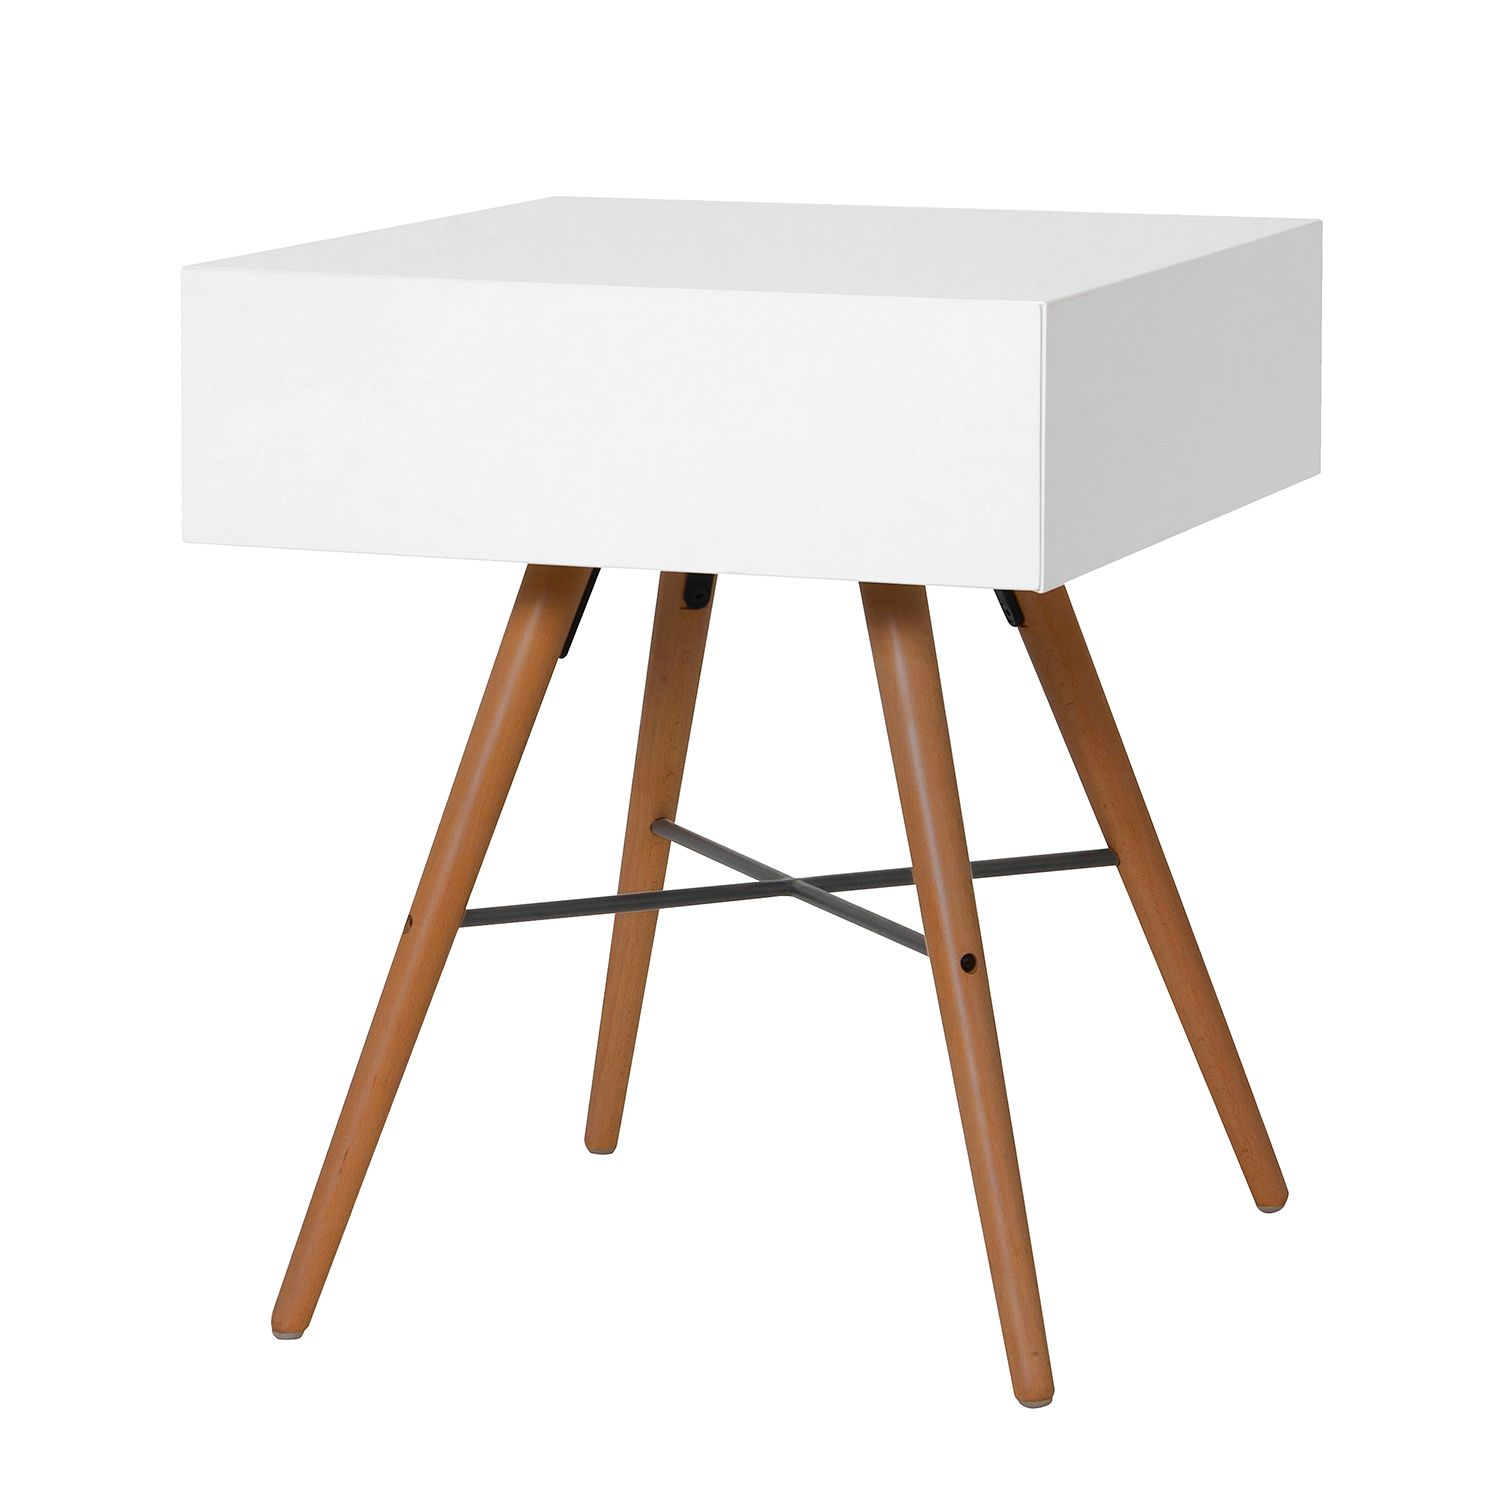 Table d'appoint Filiam - Blanc / Marron foncé,